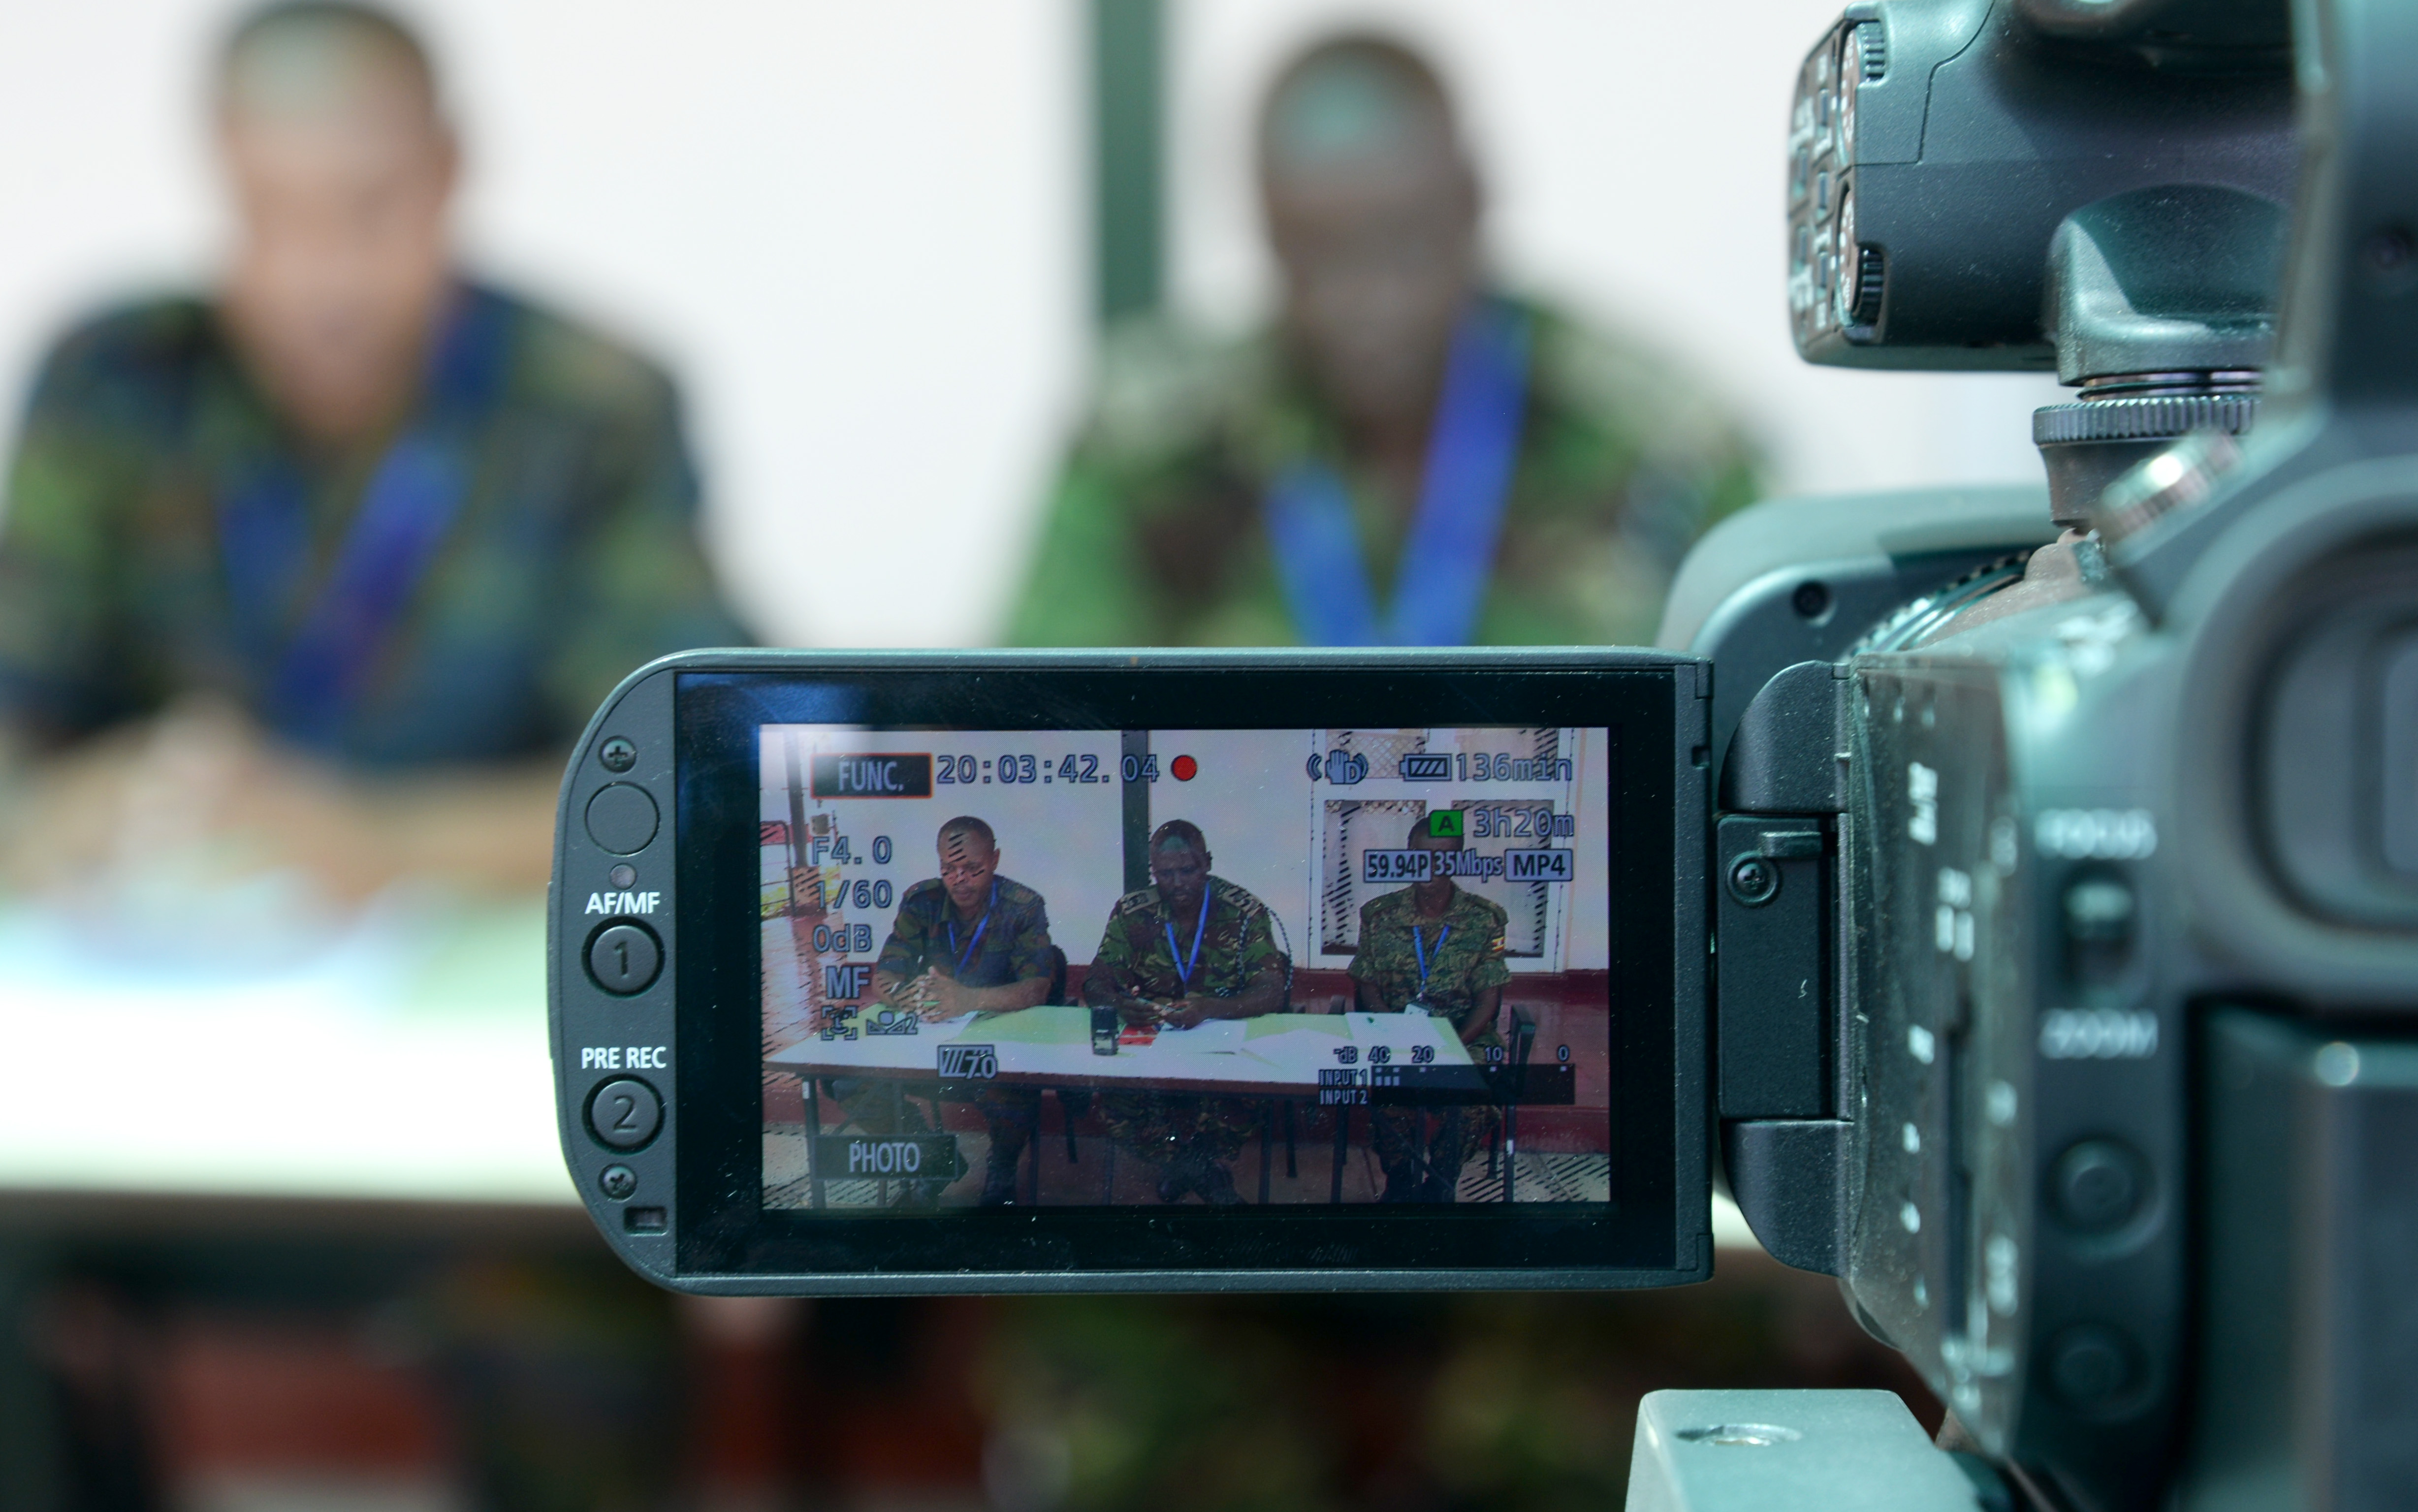 A camera records a simulated press conference March 3, 2016, during an exercise to complete a staff officers course in Nairobi, Kenya.  Course mentors recorded the practice conference to show the officers their performance and ultimately lead to improvement. (U.S. Air Force photo by Staff Sgt. Kate Thornton)